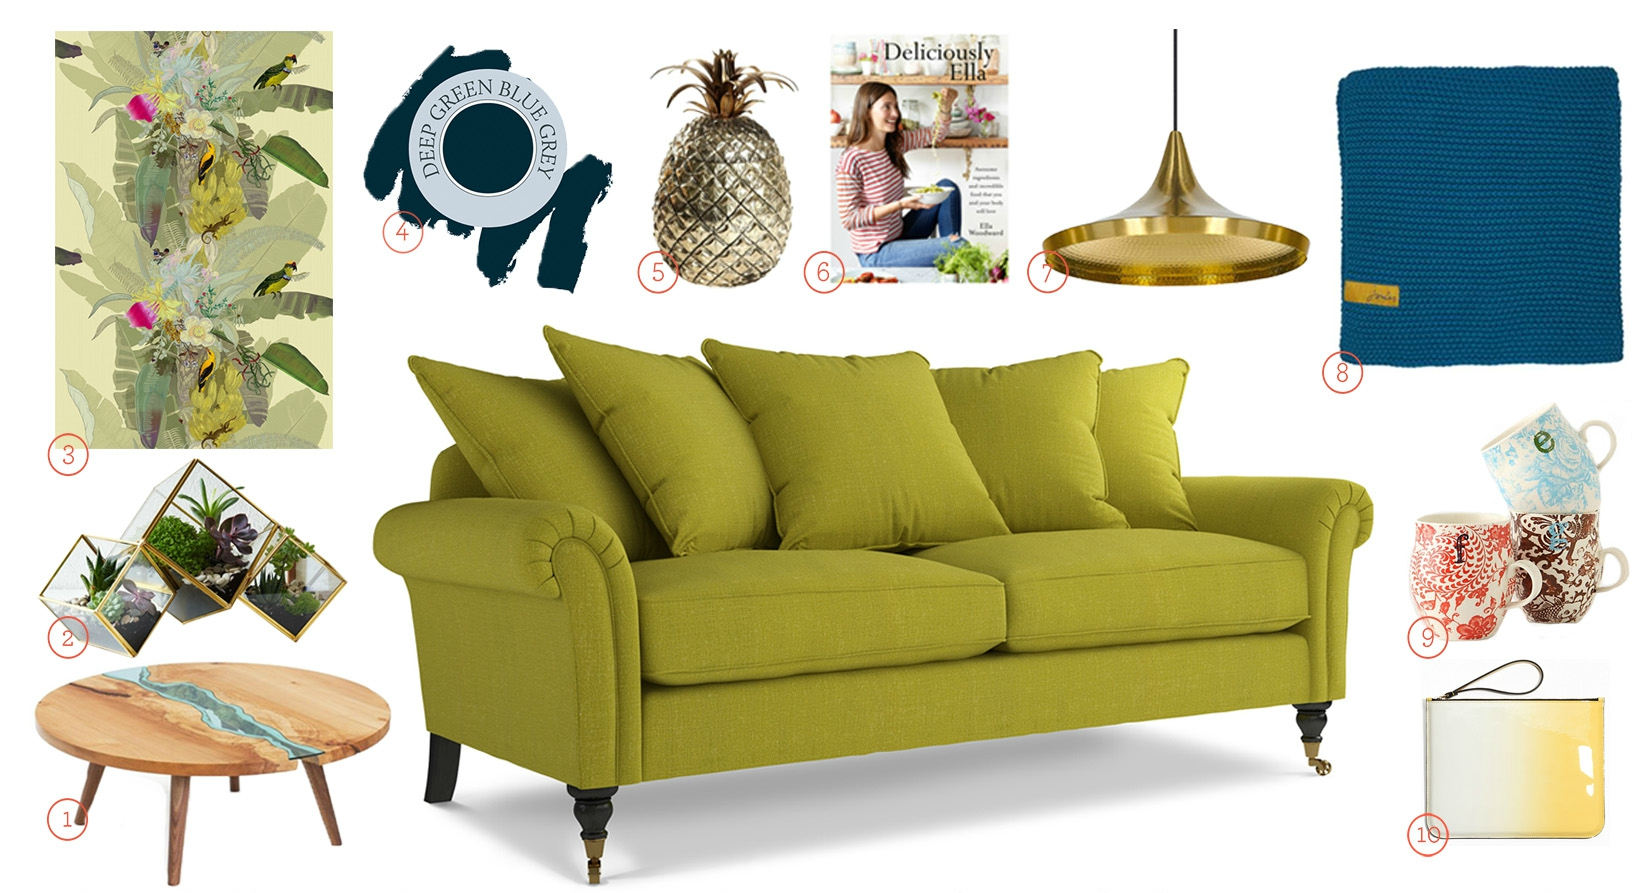 Get The Look - Helena Scatterback Sofa Upholstered in Stirling Lime